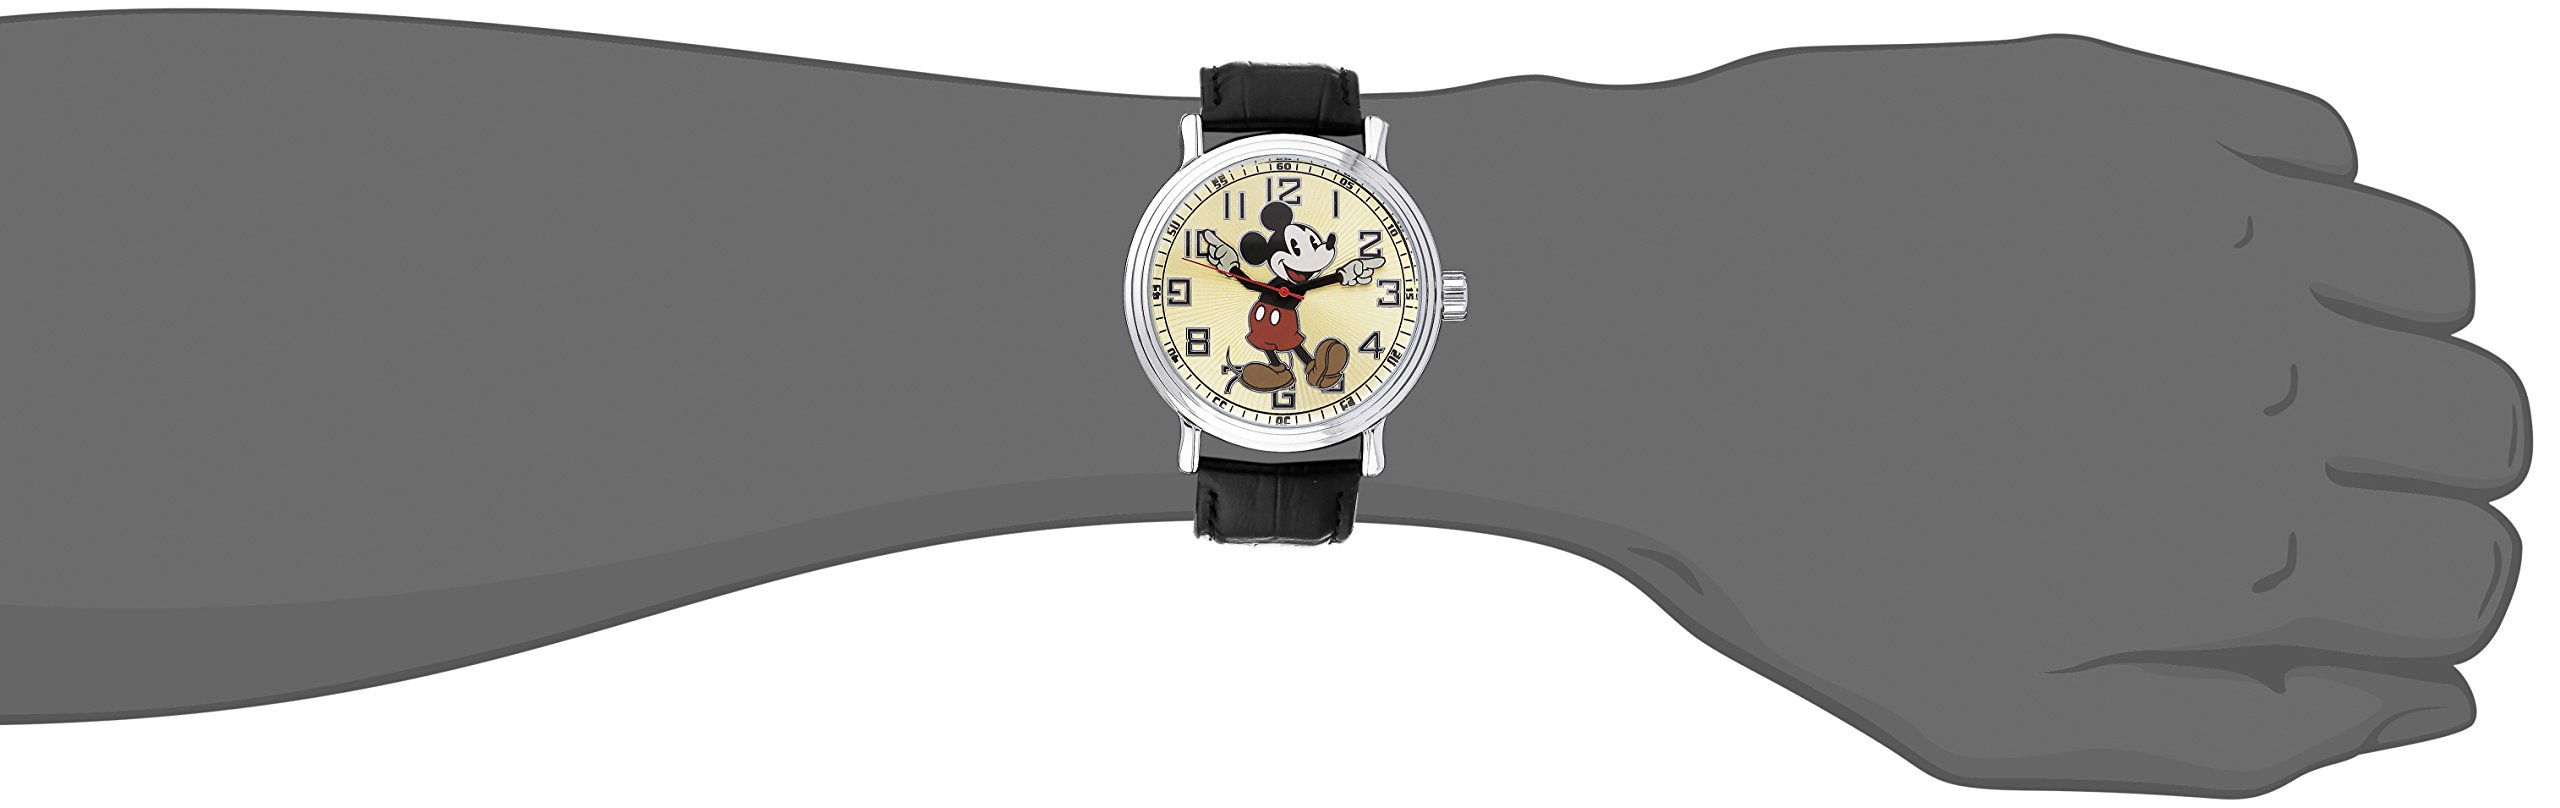 """Disney Men's 56109 """"Vintage Mickey Mouse"""" Watch with Black Leather Band"""